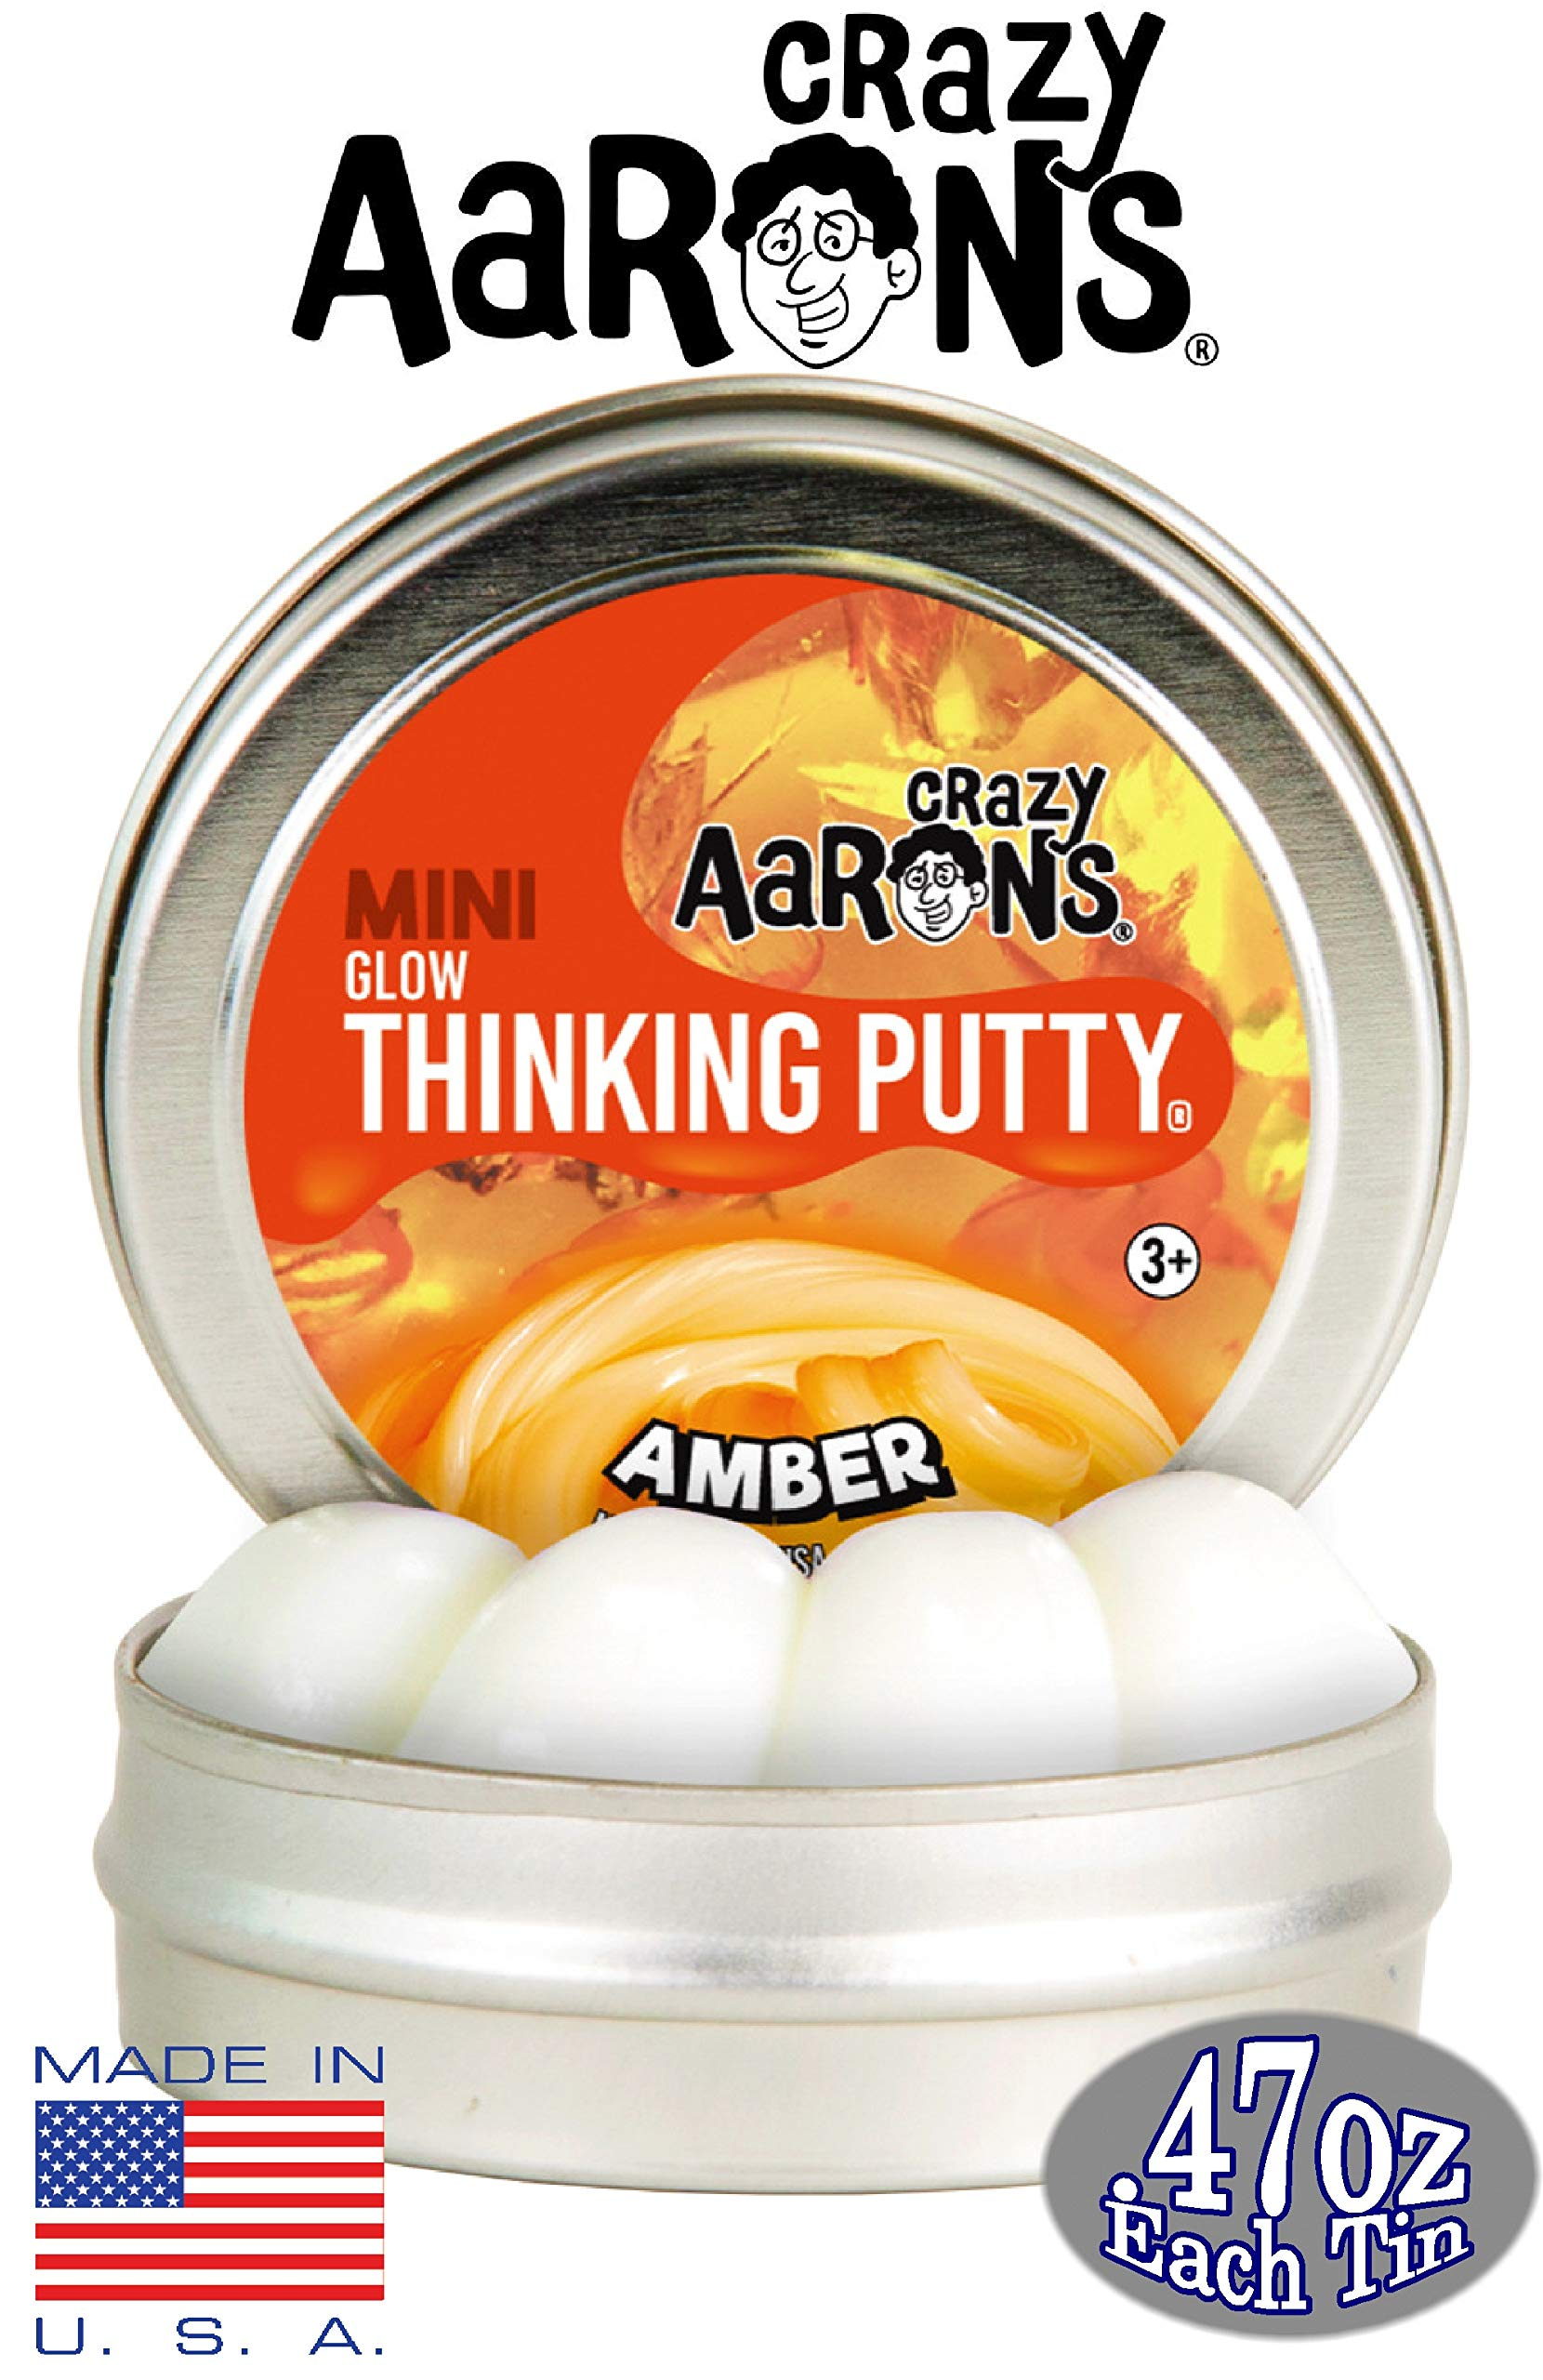 Crazy Aaron's Thinking Putty Mini Tin Gift Set Bundle (Sample Set 3) with Super Fly, Neon Flash, Super Lava, Amber, Love Air & Exclusive Scorpion Skin Glow in The Dark - 6 Pack by Crazy Aaron's (Image #7)